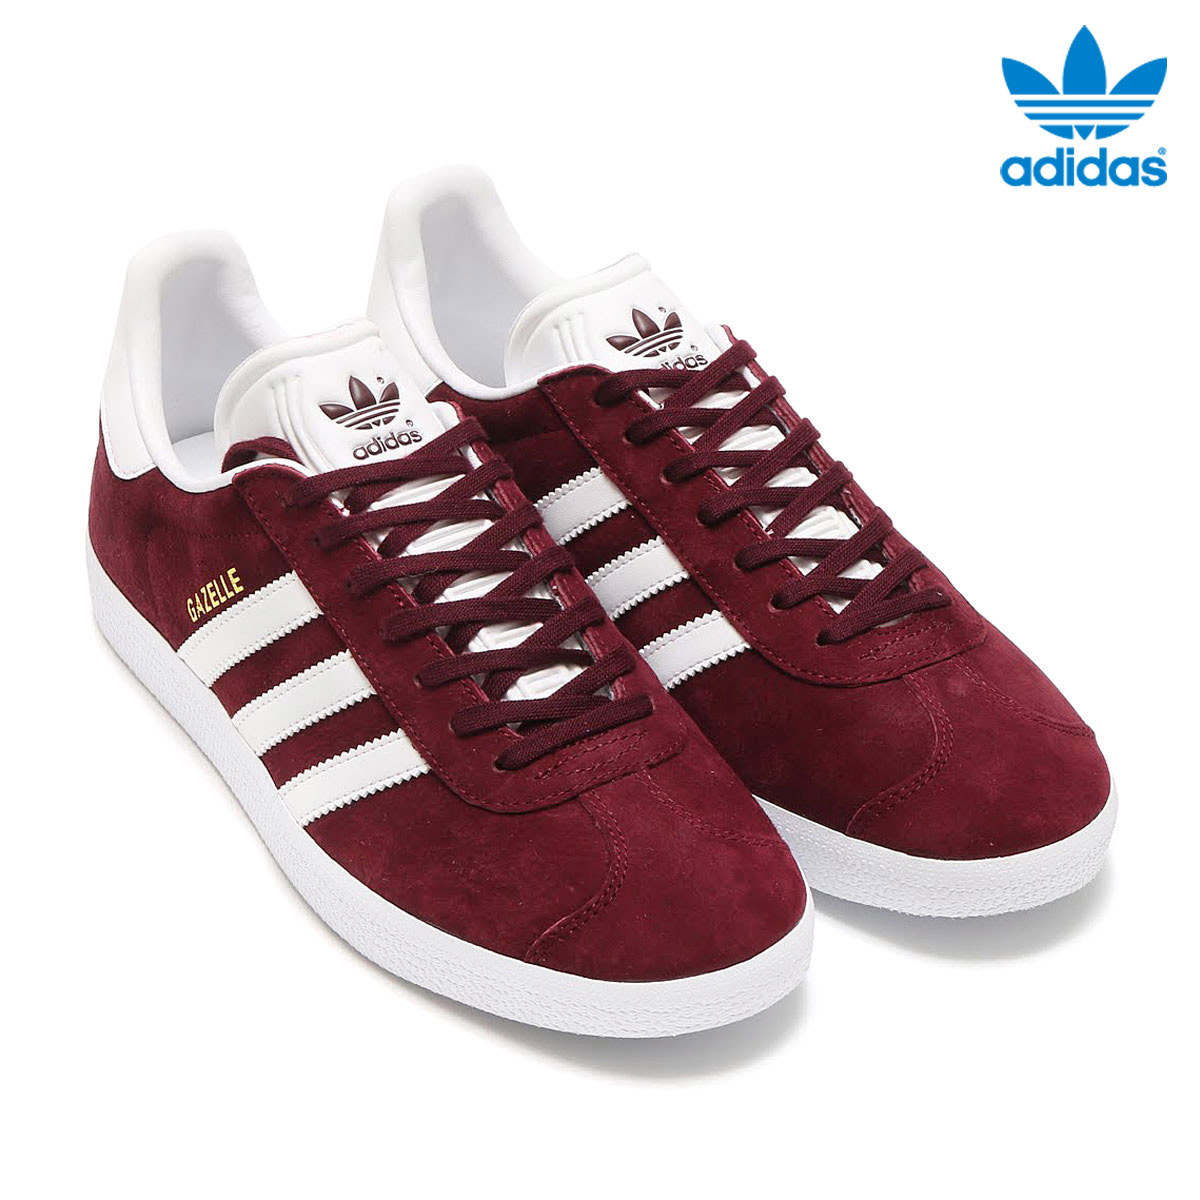 adidas gazelle bordeaux bb5255